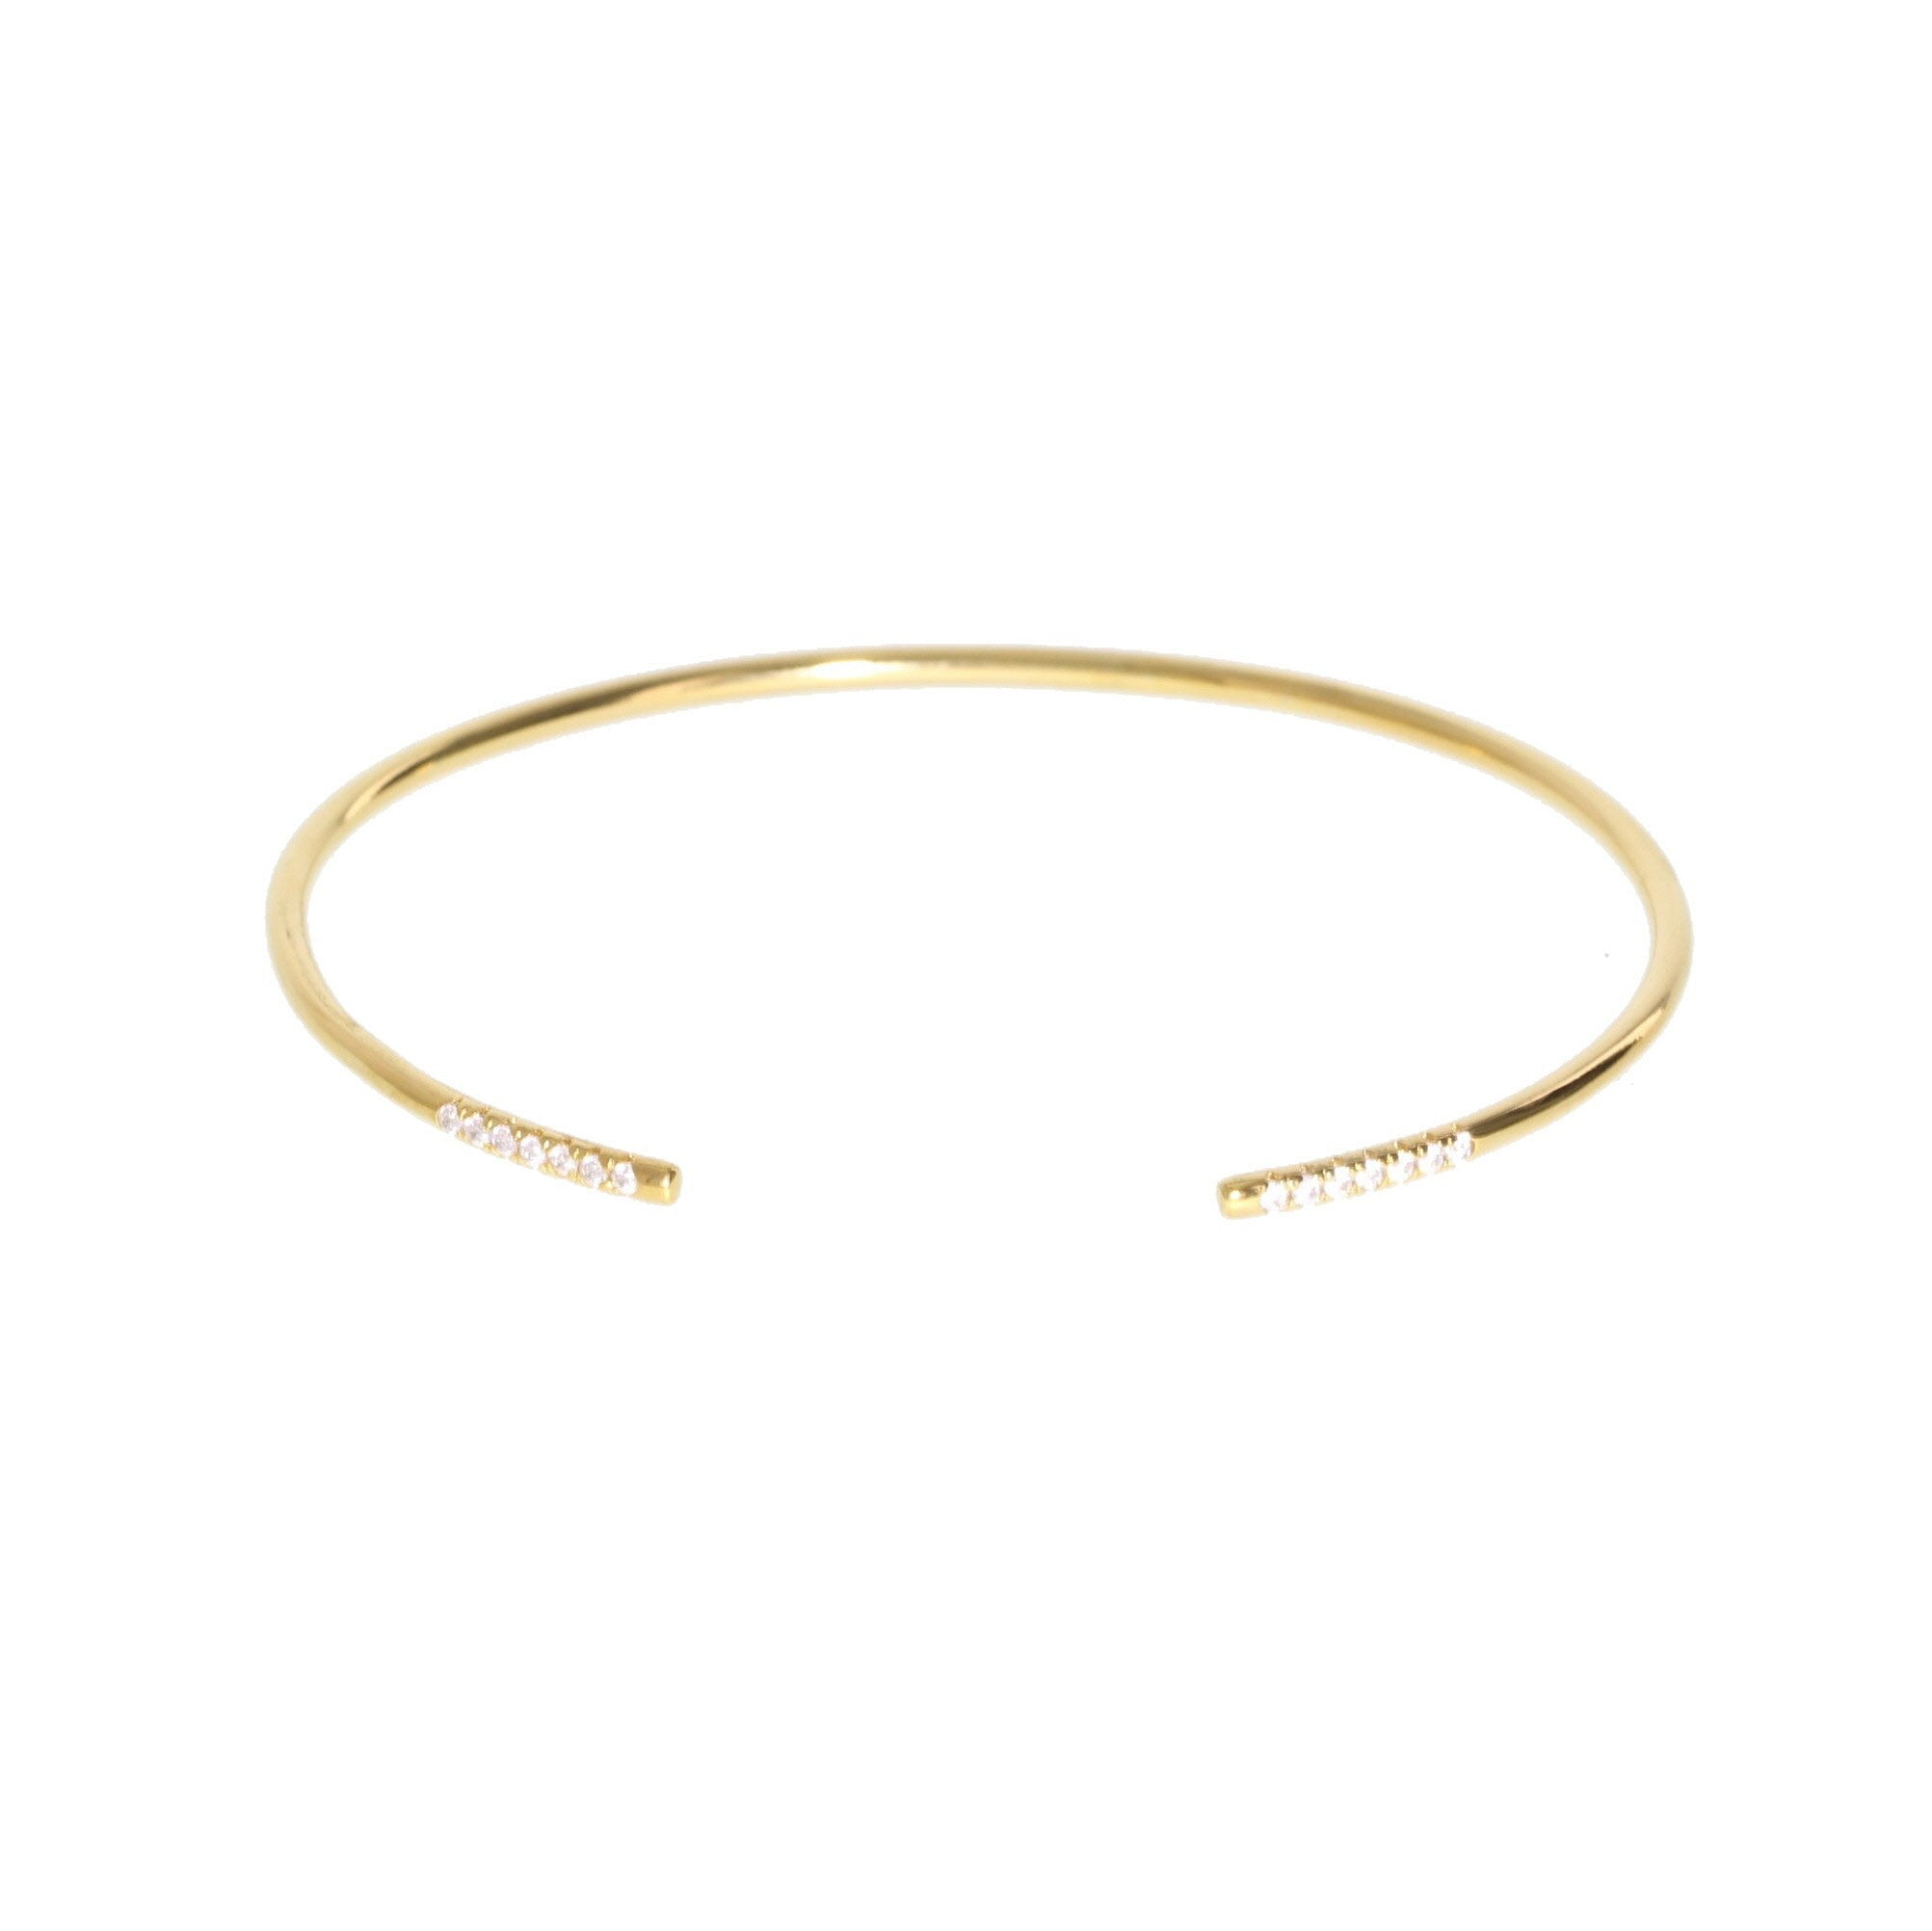 gold bracelet il p for layering mom day charm filled bangles bangle mothers fullxfull expandable adjustable gift